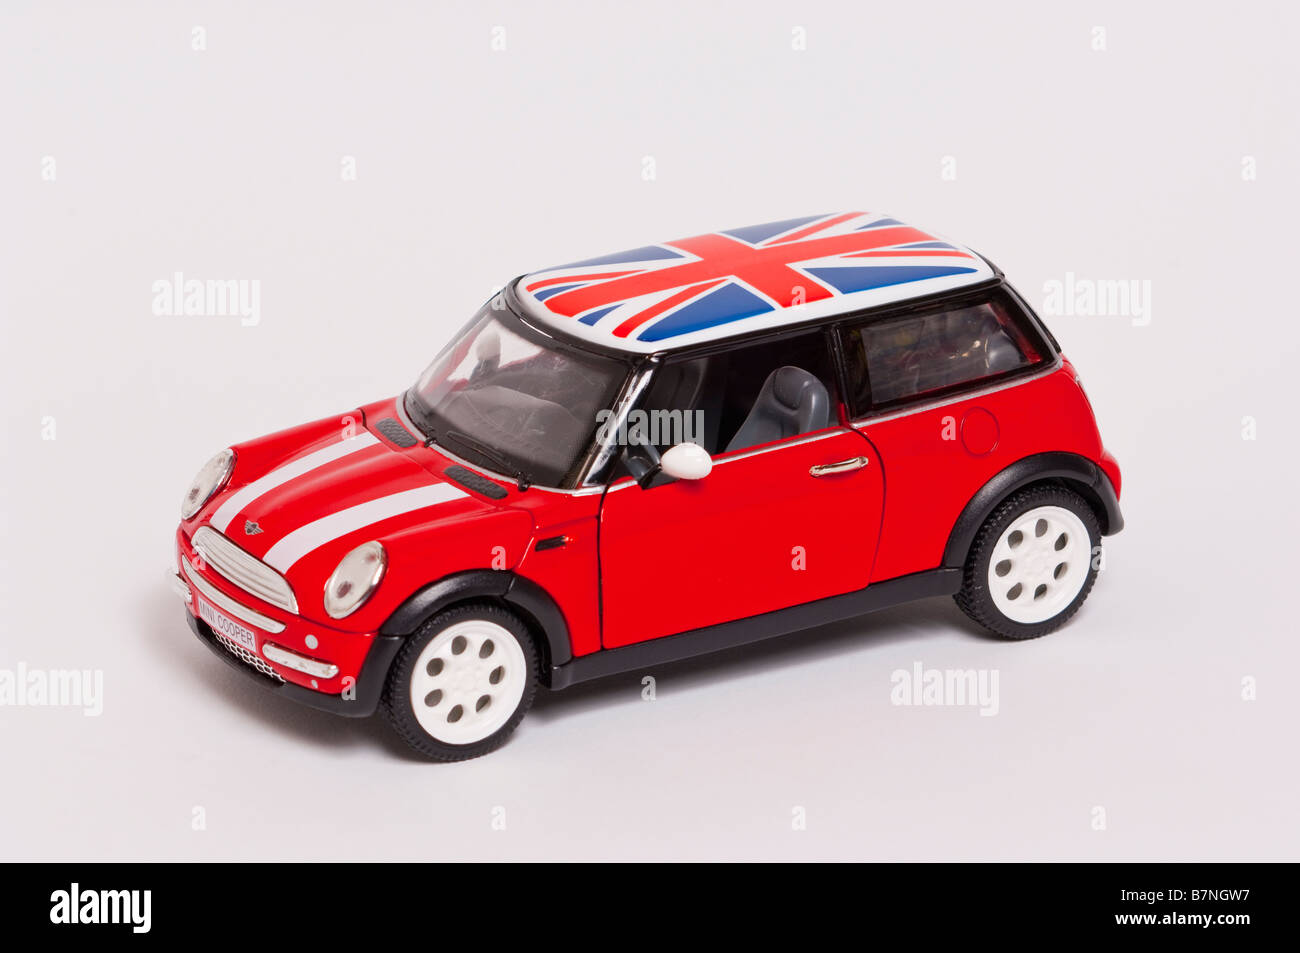 A Close Up Of A Toy Model Mini Cooper Car On A White